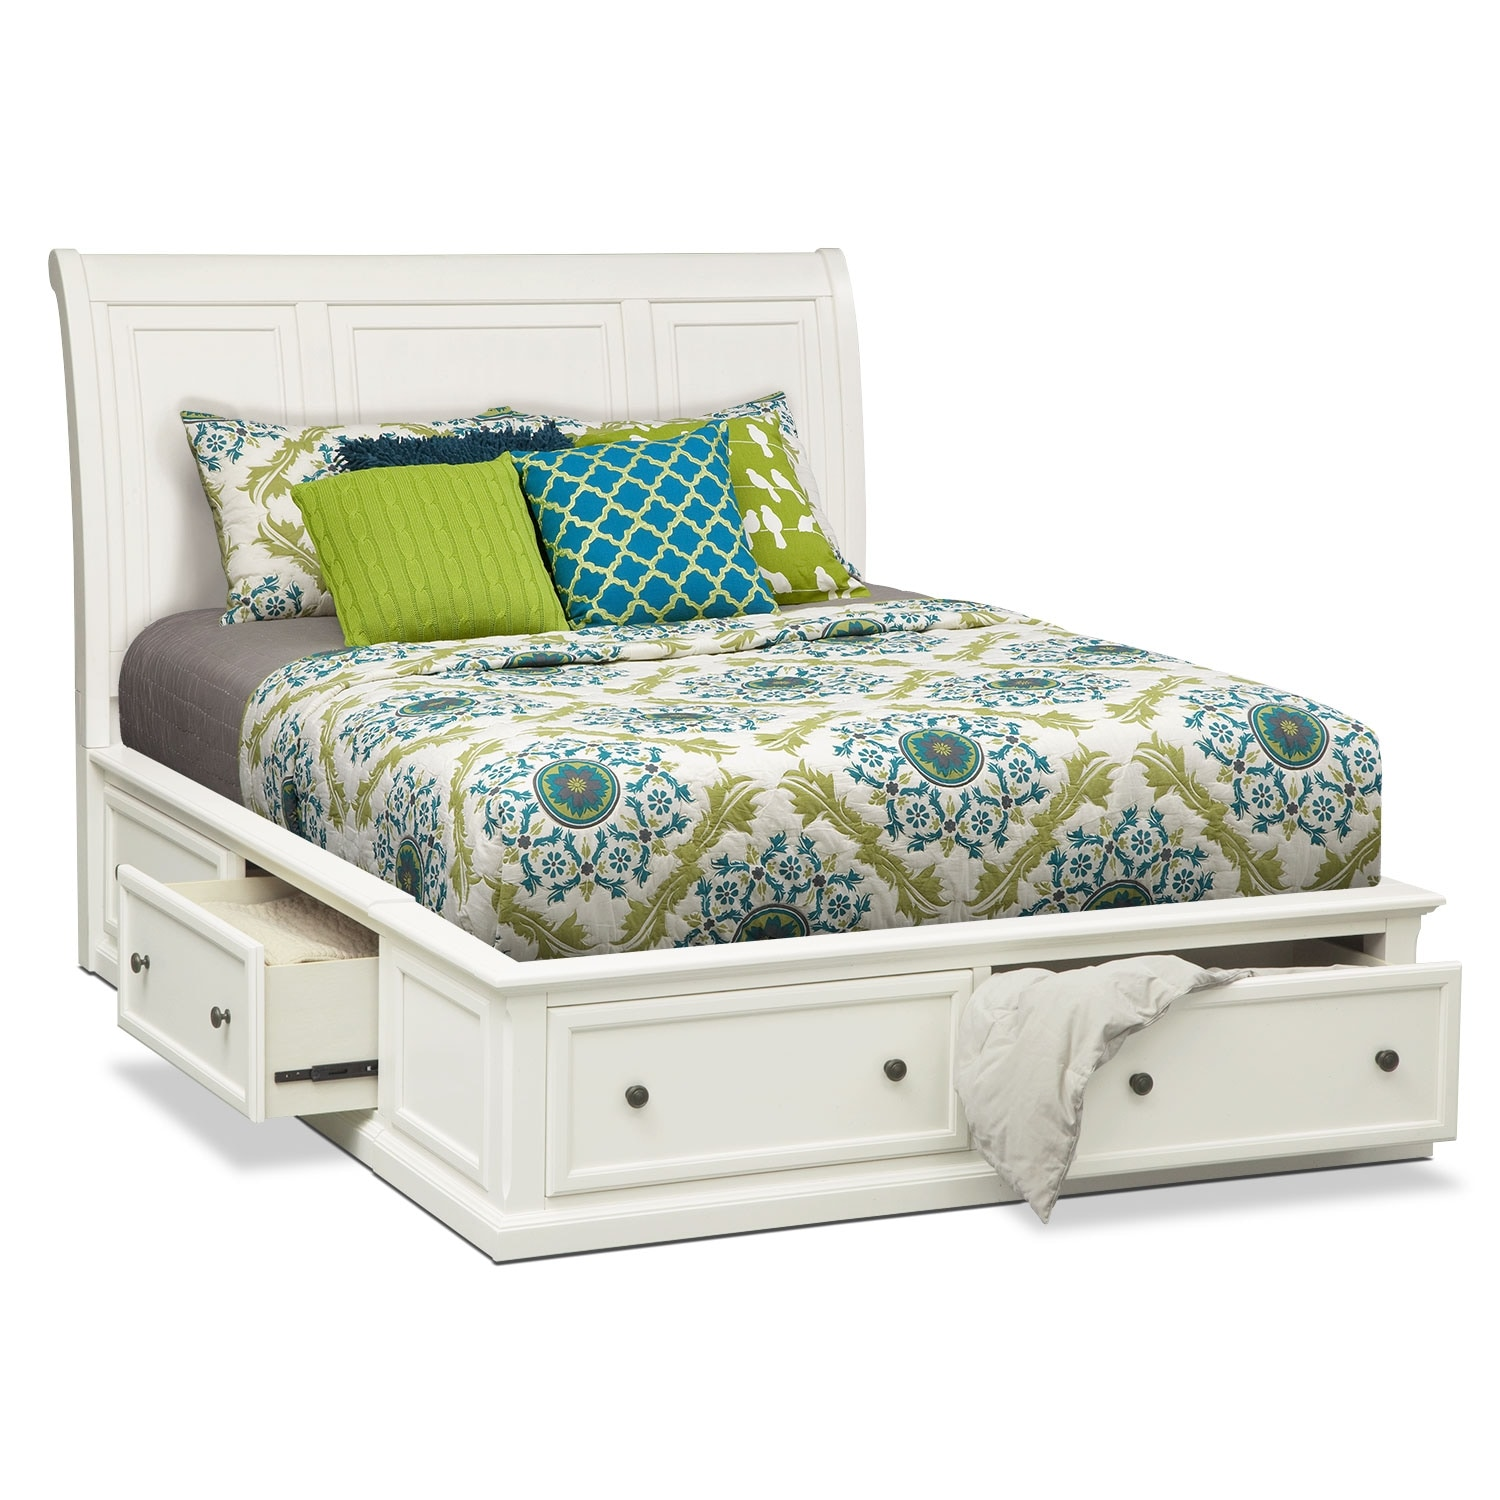 Hanover queen storage bed white american signature for Bedroom set and mattress